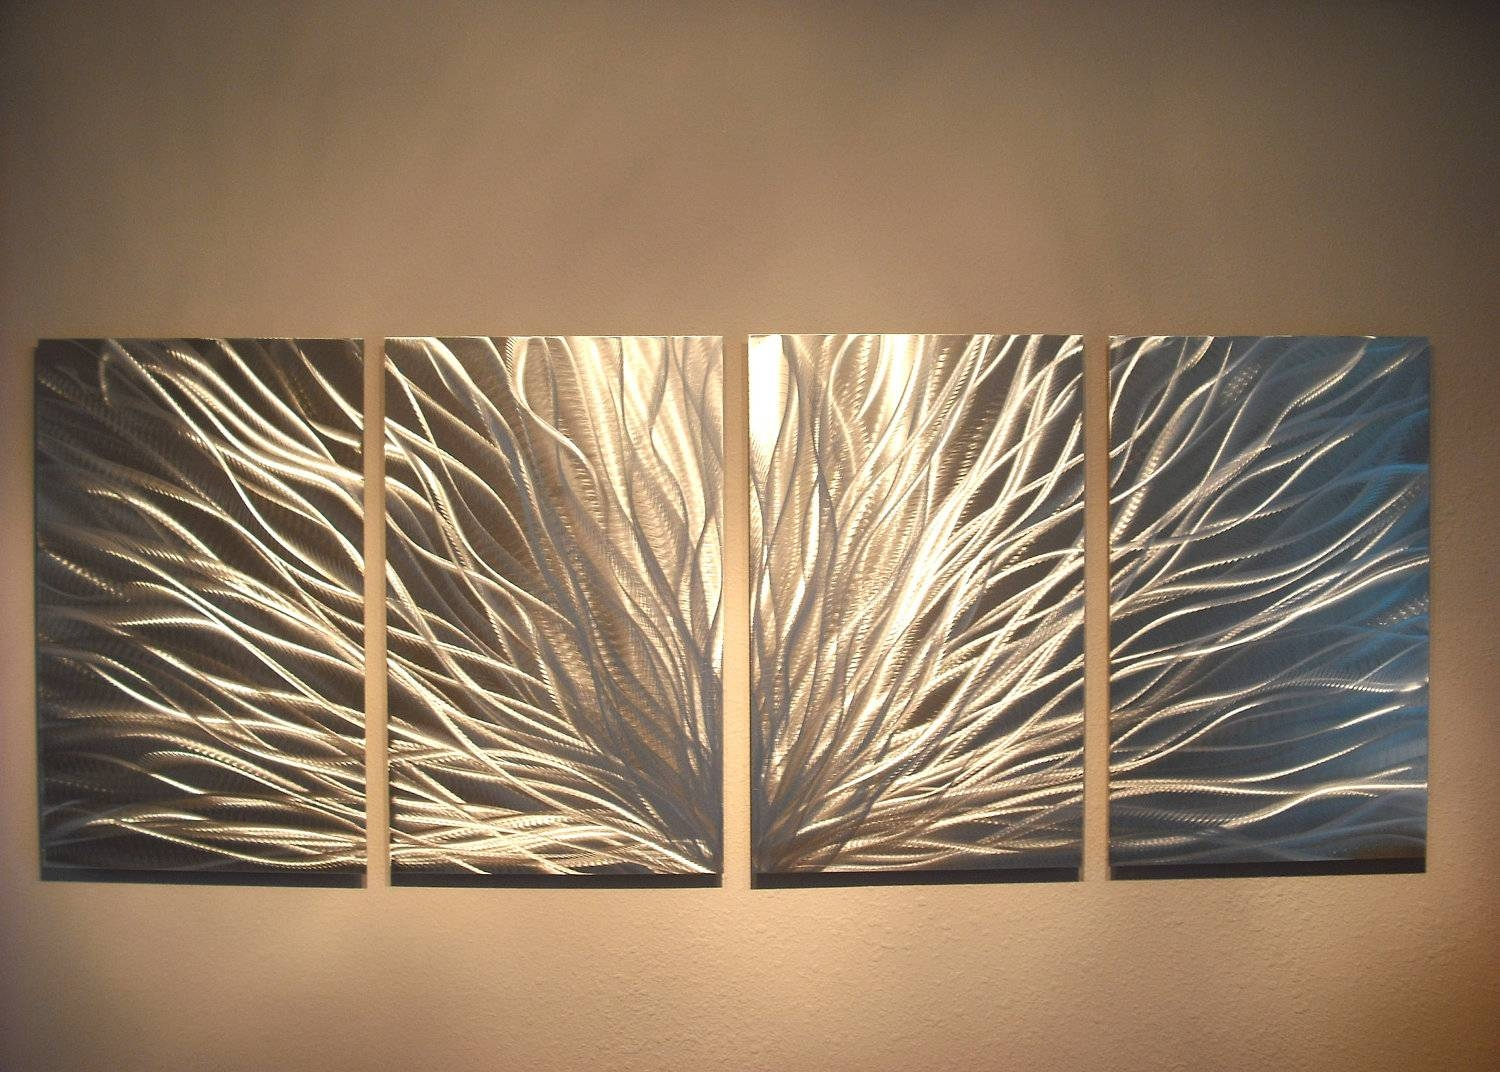 Radiance – Abstract Metal Wall Art Contemporary Modern Decor Pertaining To Most Popular Metal Wall Art Decorating (View 13 of 20)